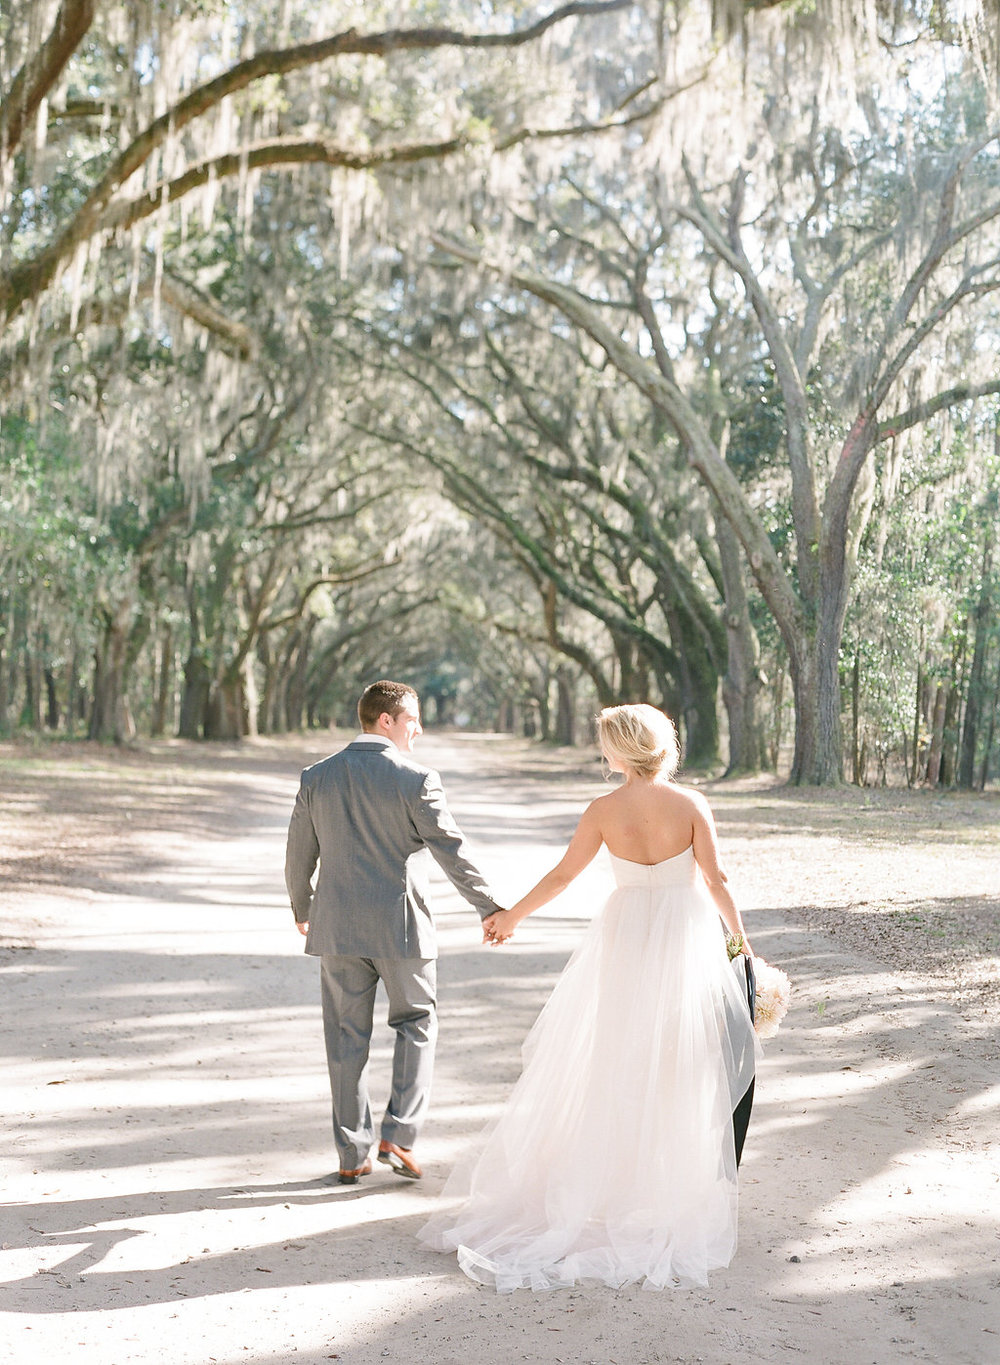 the-happy-bloom-wormsloe-wedding-savannah-wedding-ivory-and-beau-bridal-boutique-savannah-wedding-dresses-savannah-bridal-boutique-georgia-bridal-boutique-design-studio-south-sunset-wedding-blush-by-hayley-paige-candi-1550-blush-wedding-dress-16.jpg